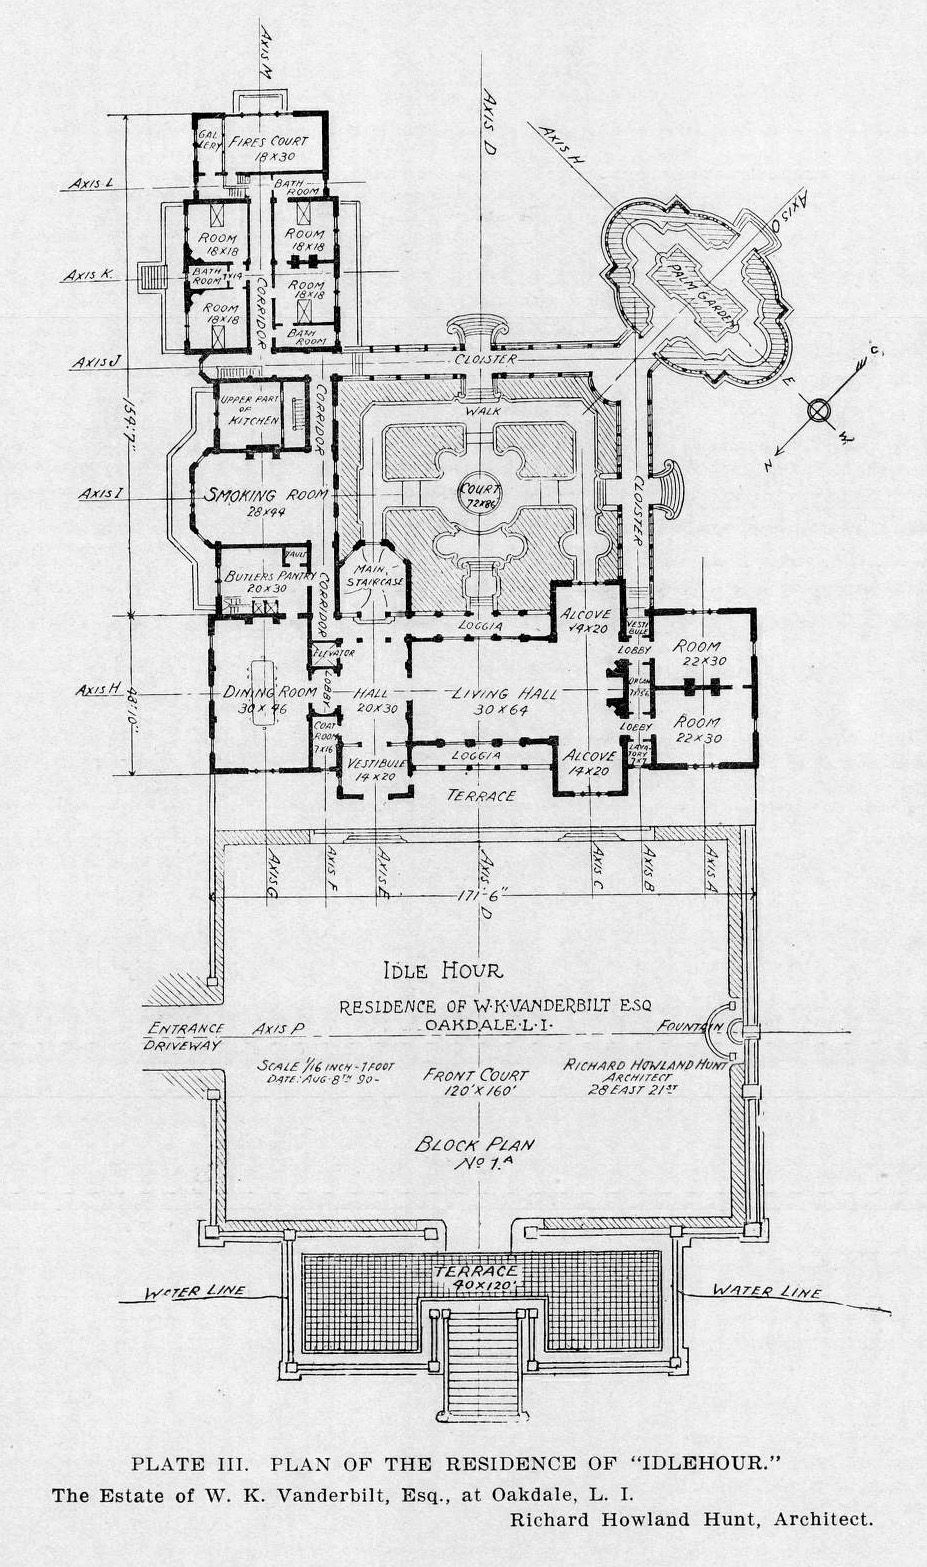 blueprints for houses with open floor plans, mansion plans, i house architecture, i house home, home design floor plans, home builders floor plans, roof plans, split level home floor plans, on i house plan oakdale